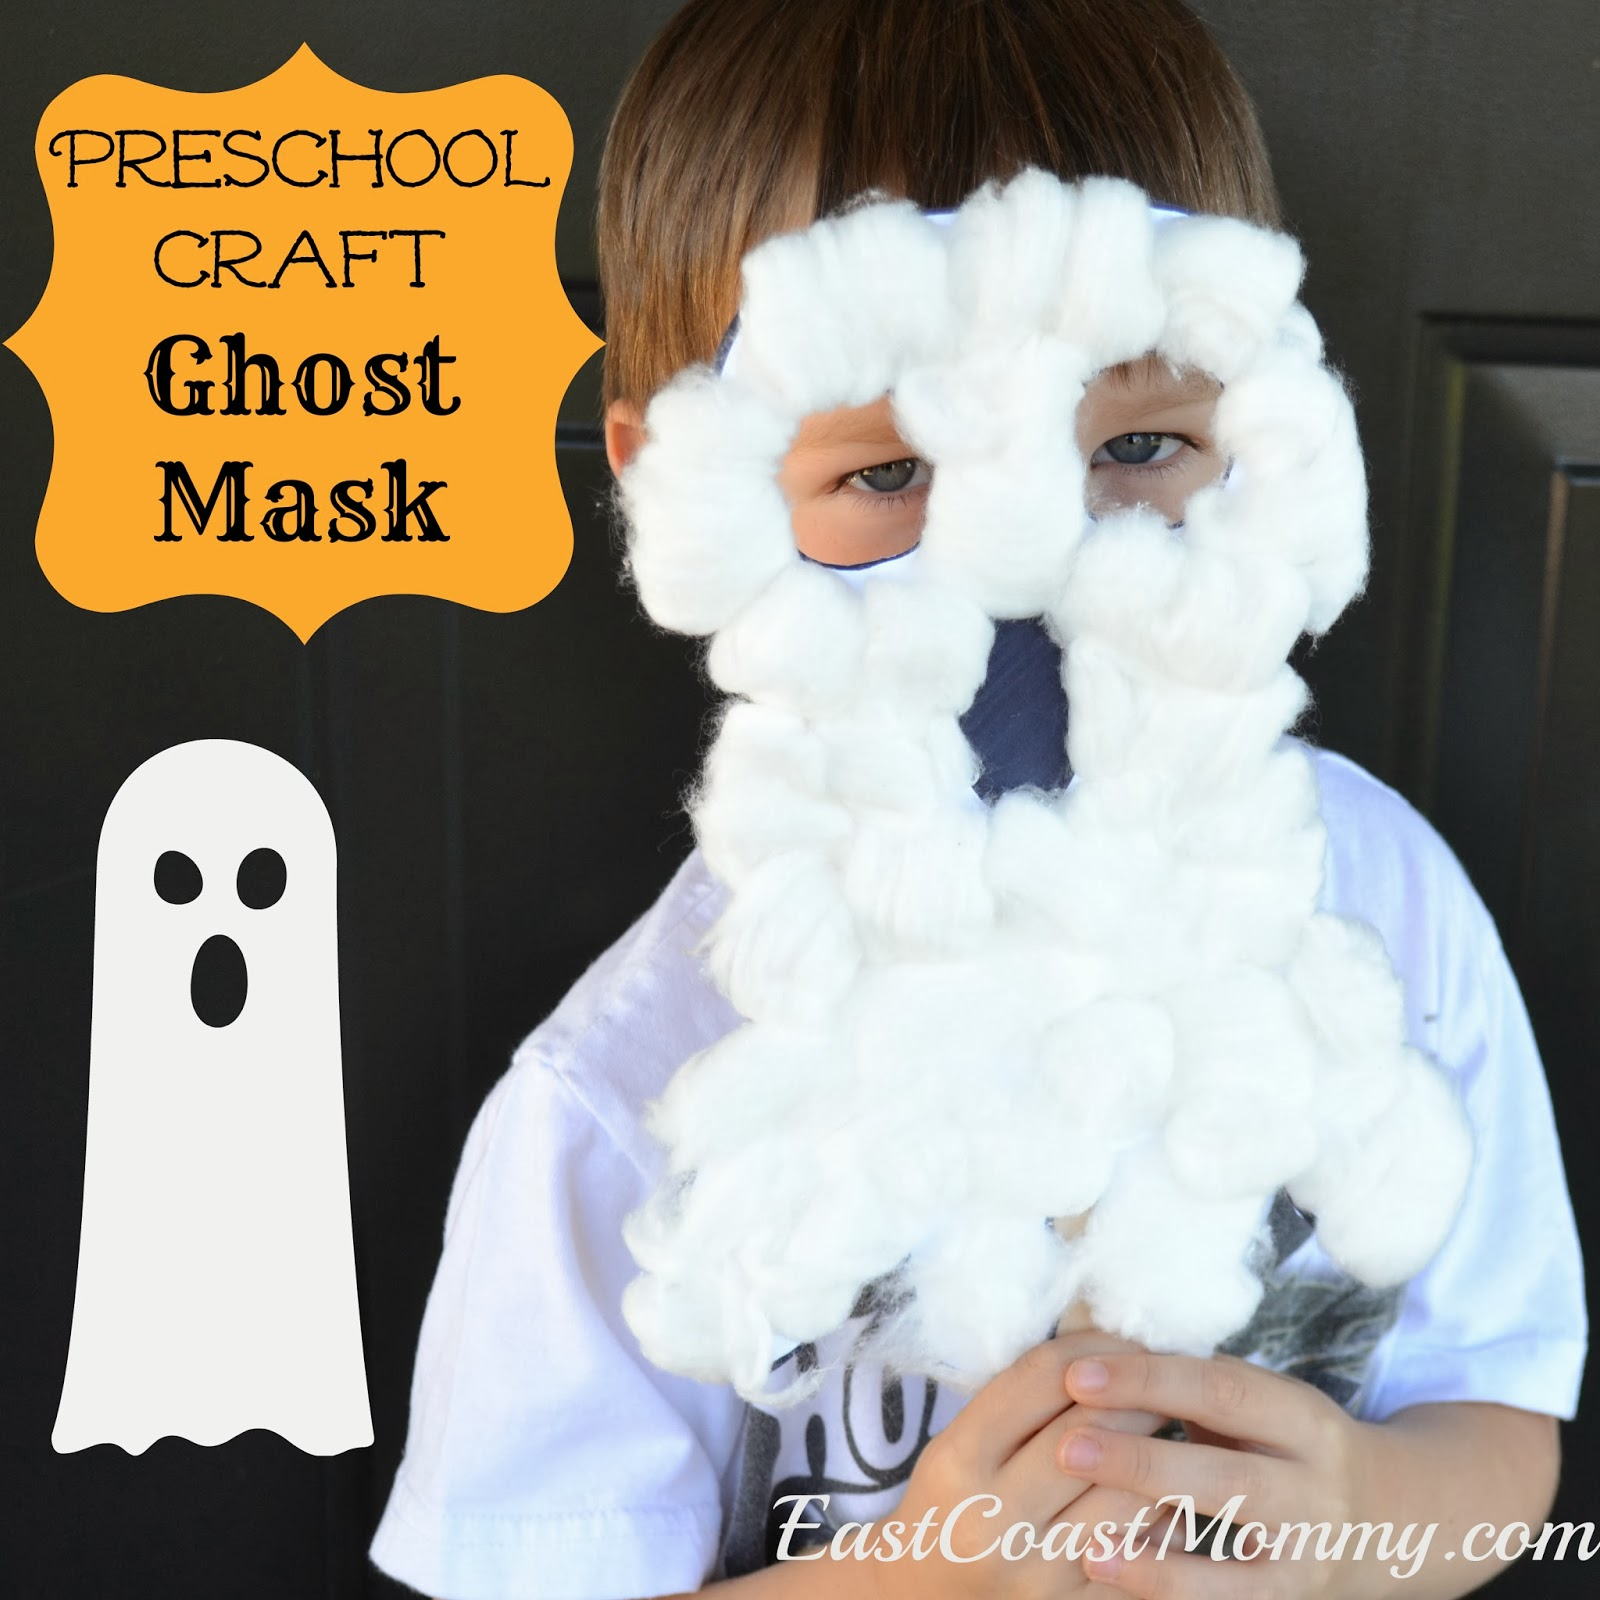 East Coast Mommy Ghost Mask